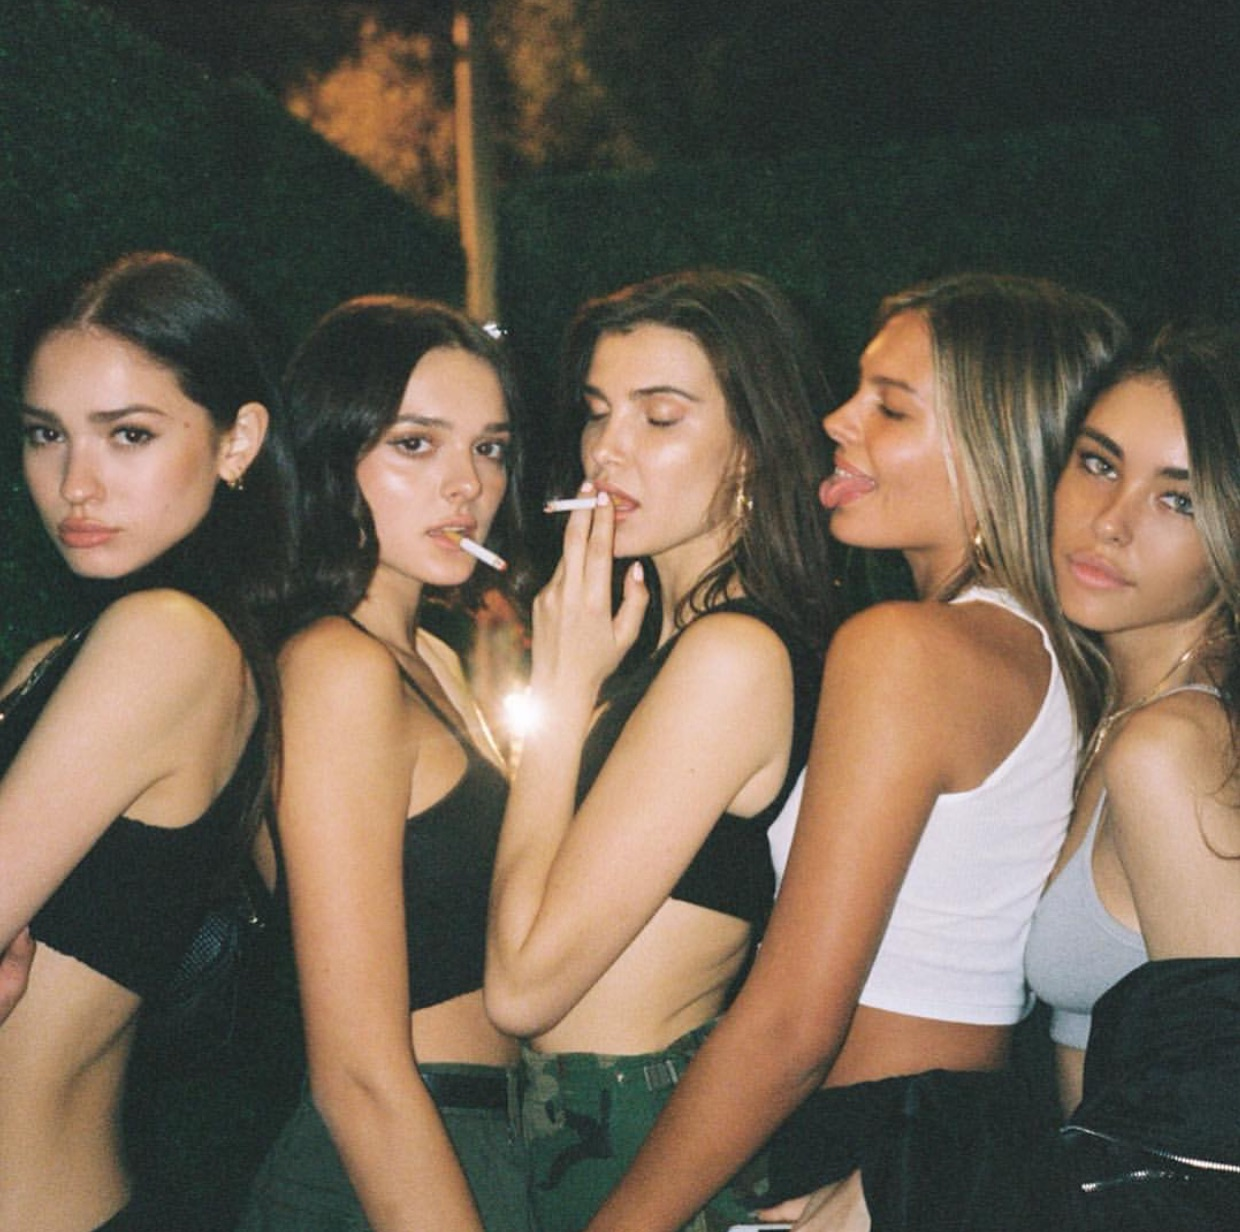 madison beer, charlotte dalessio, isabella jones and charlotte lawrence